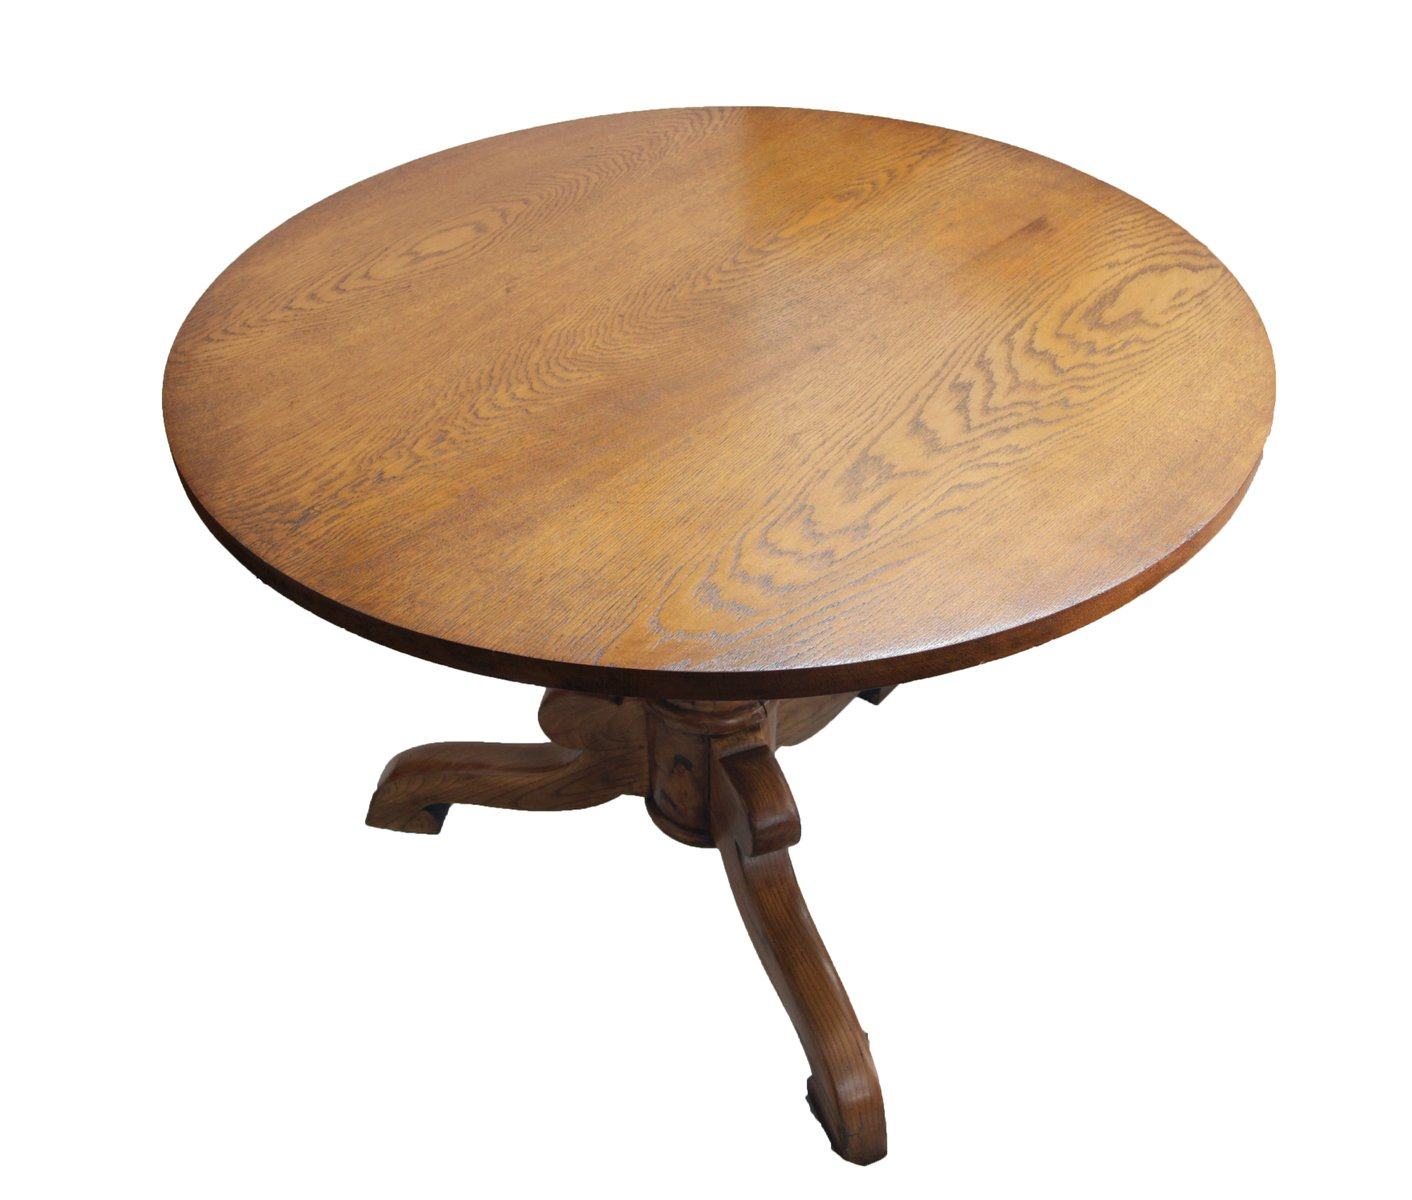 Antique Oak & Ash Round Table for sale at Pamono